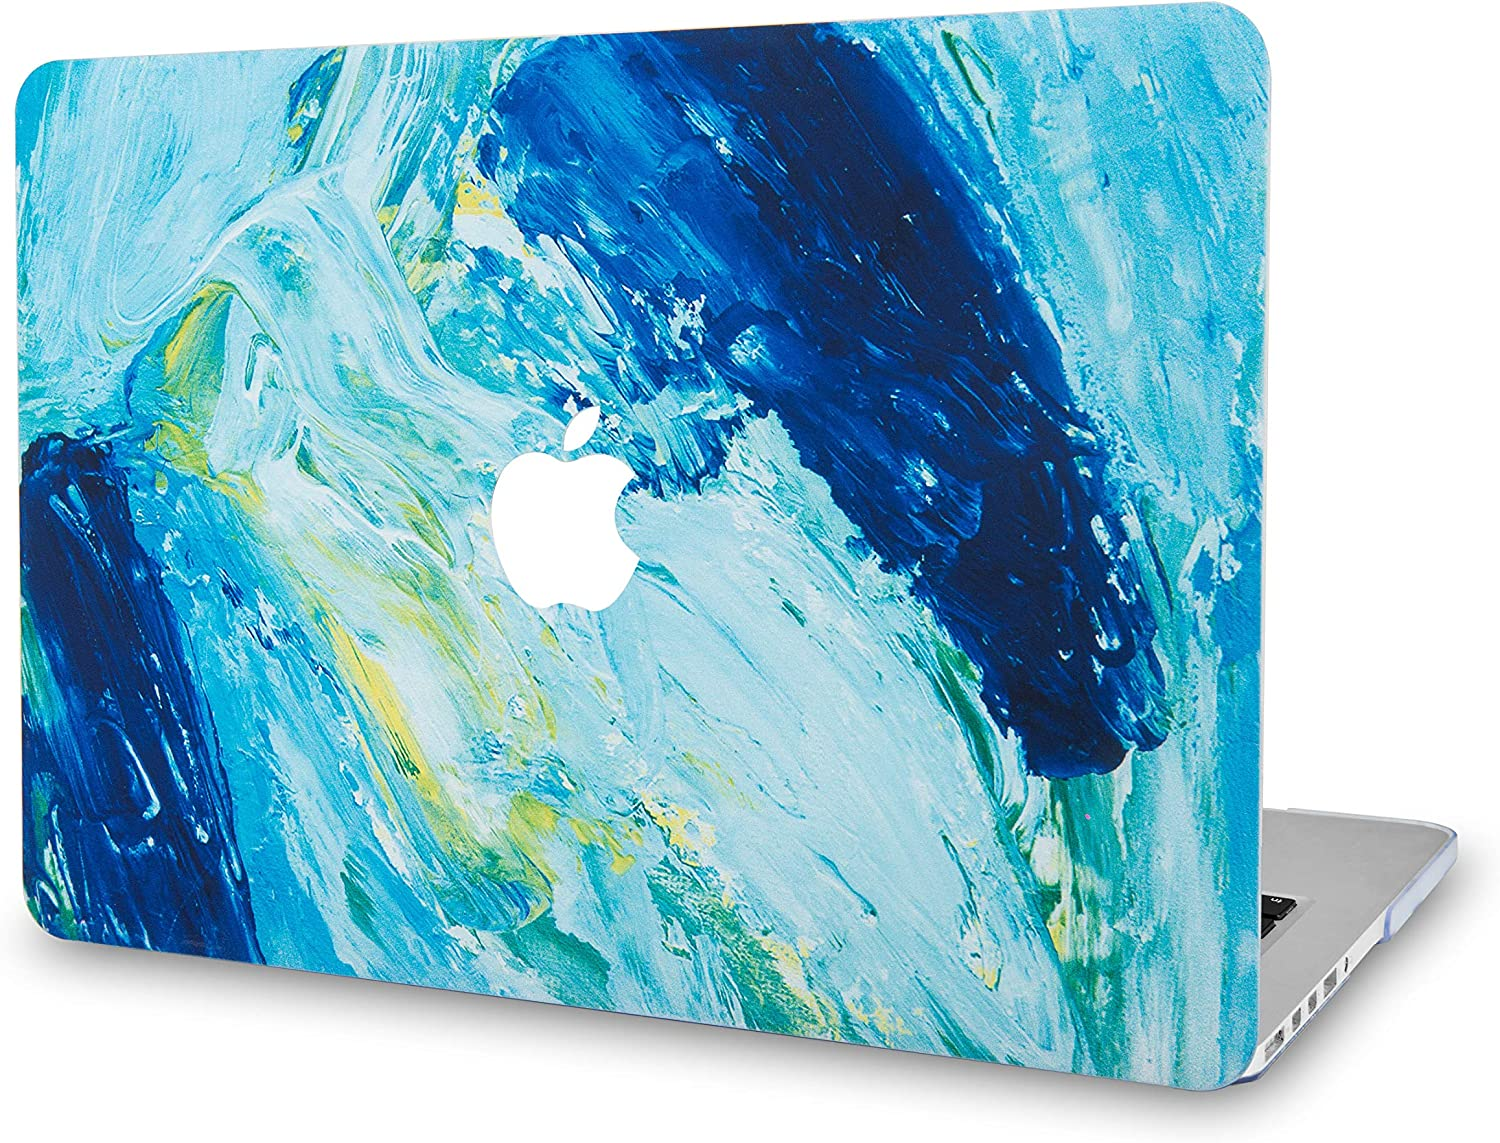 "LuvCase Laptop Case for Old MacBook Pro 13"" Retina Display (2015/2014/2013/2012 Release) A1502/A1425 Rubberized Plastic Hard Shell Cover (Ocean)"